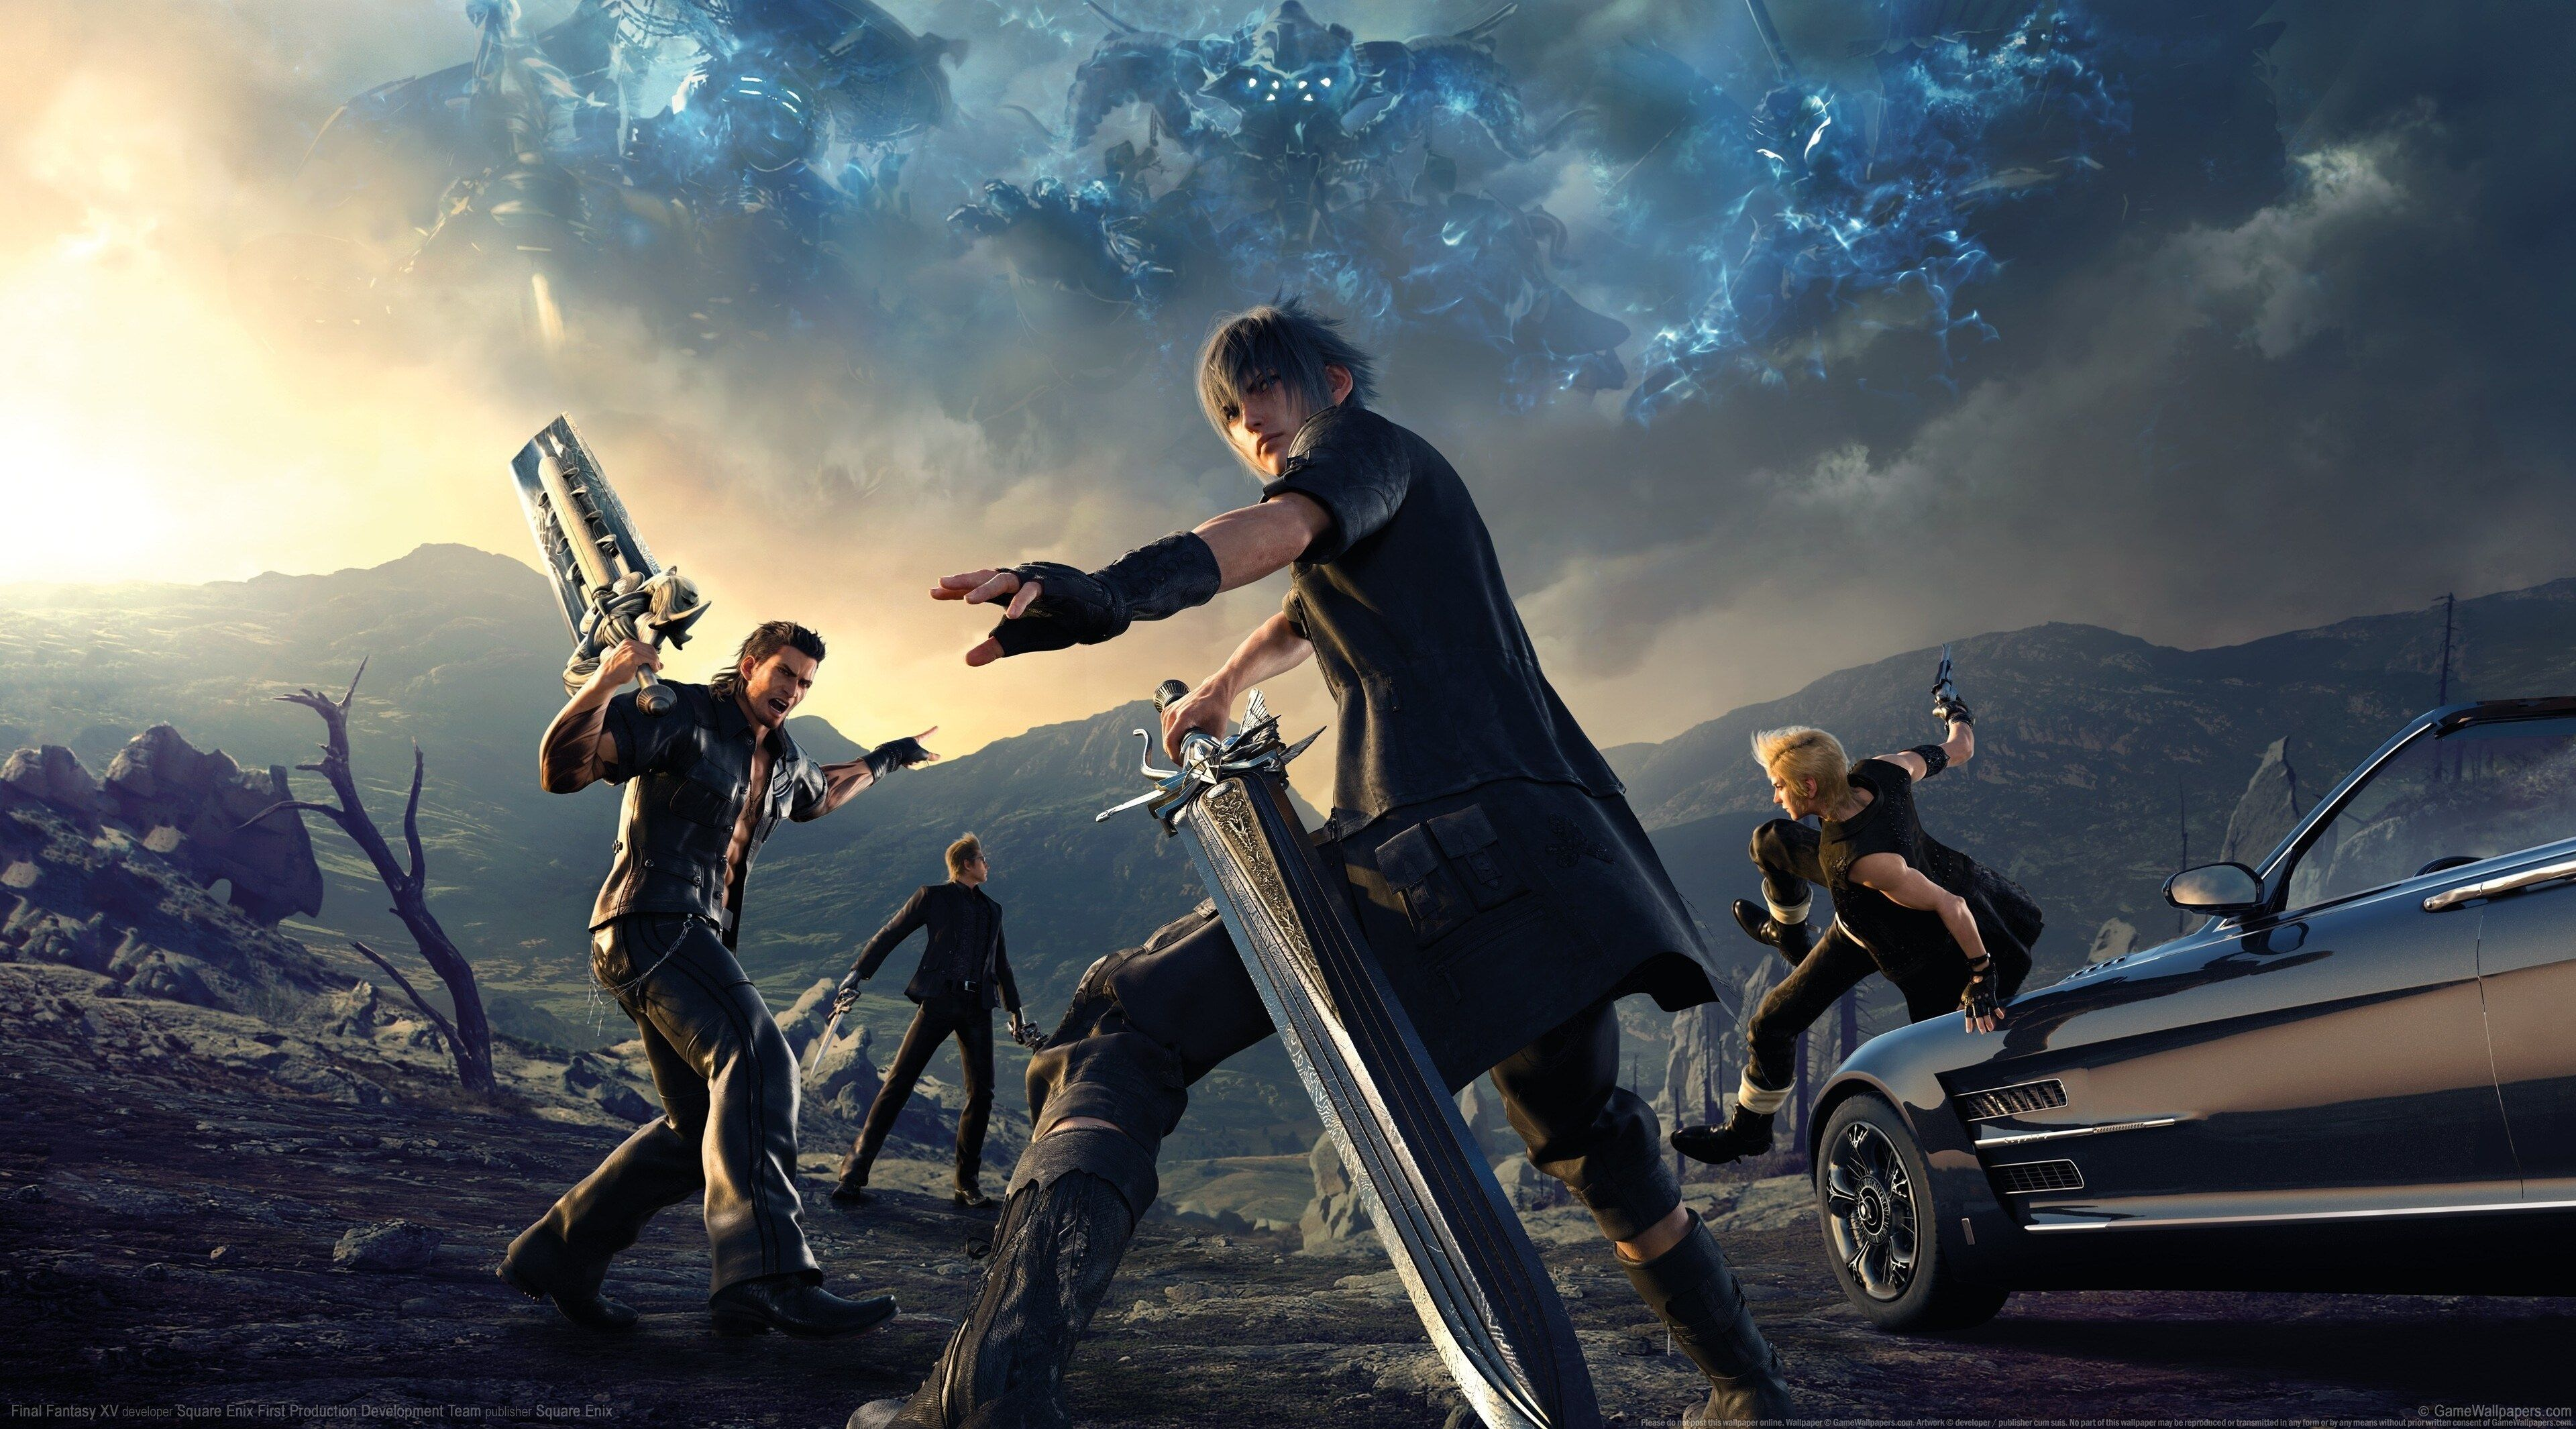 3840x2130 Final Fantasy 15 4k Wallpaper For Desktop Background Final Fantasy Xv Ps4 Final Fantasy Xv Wallpapers Final Fantasy Xv